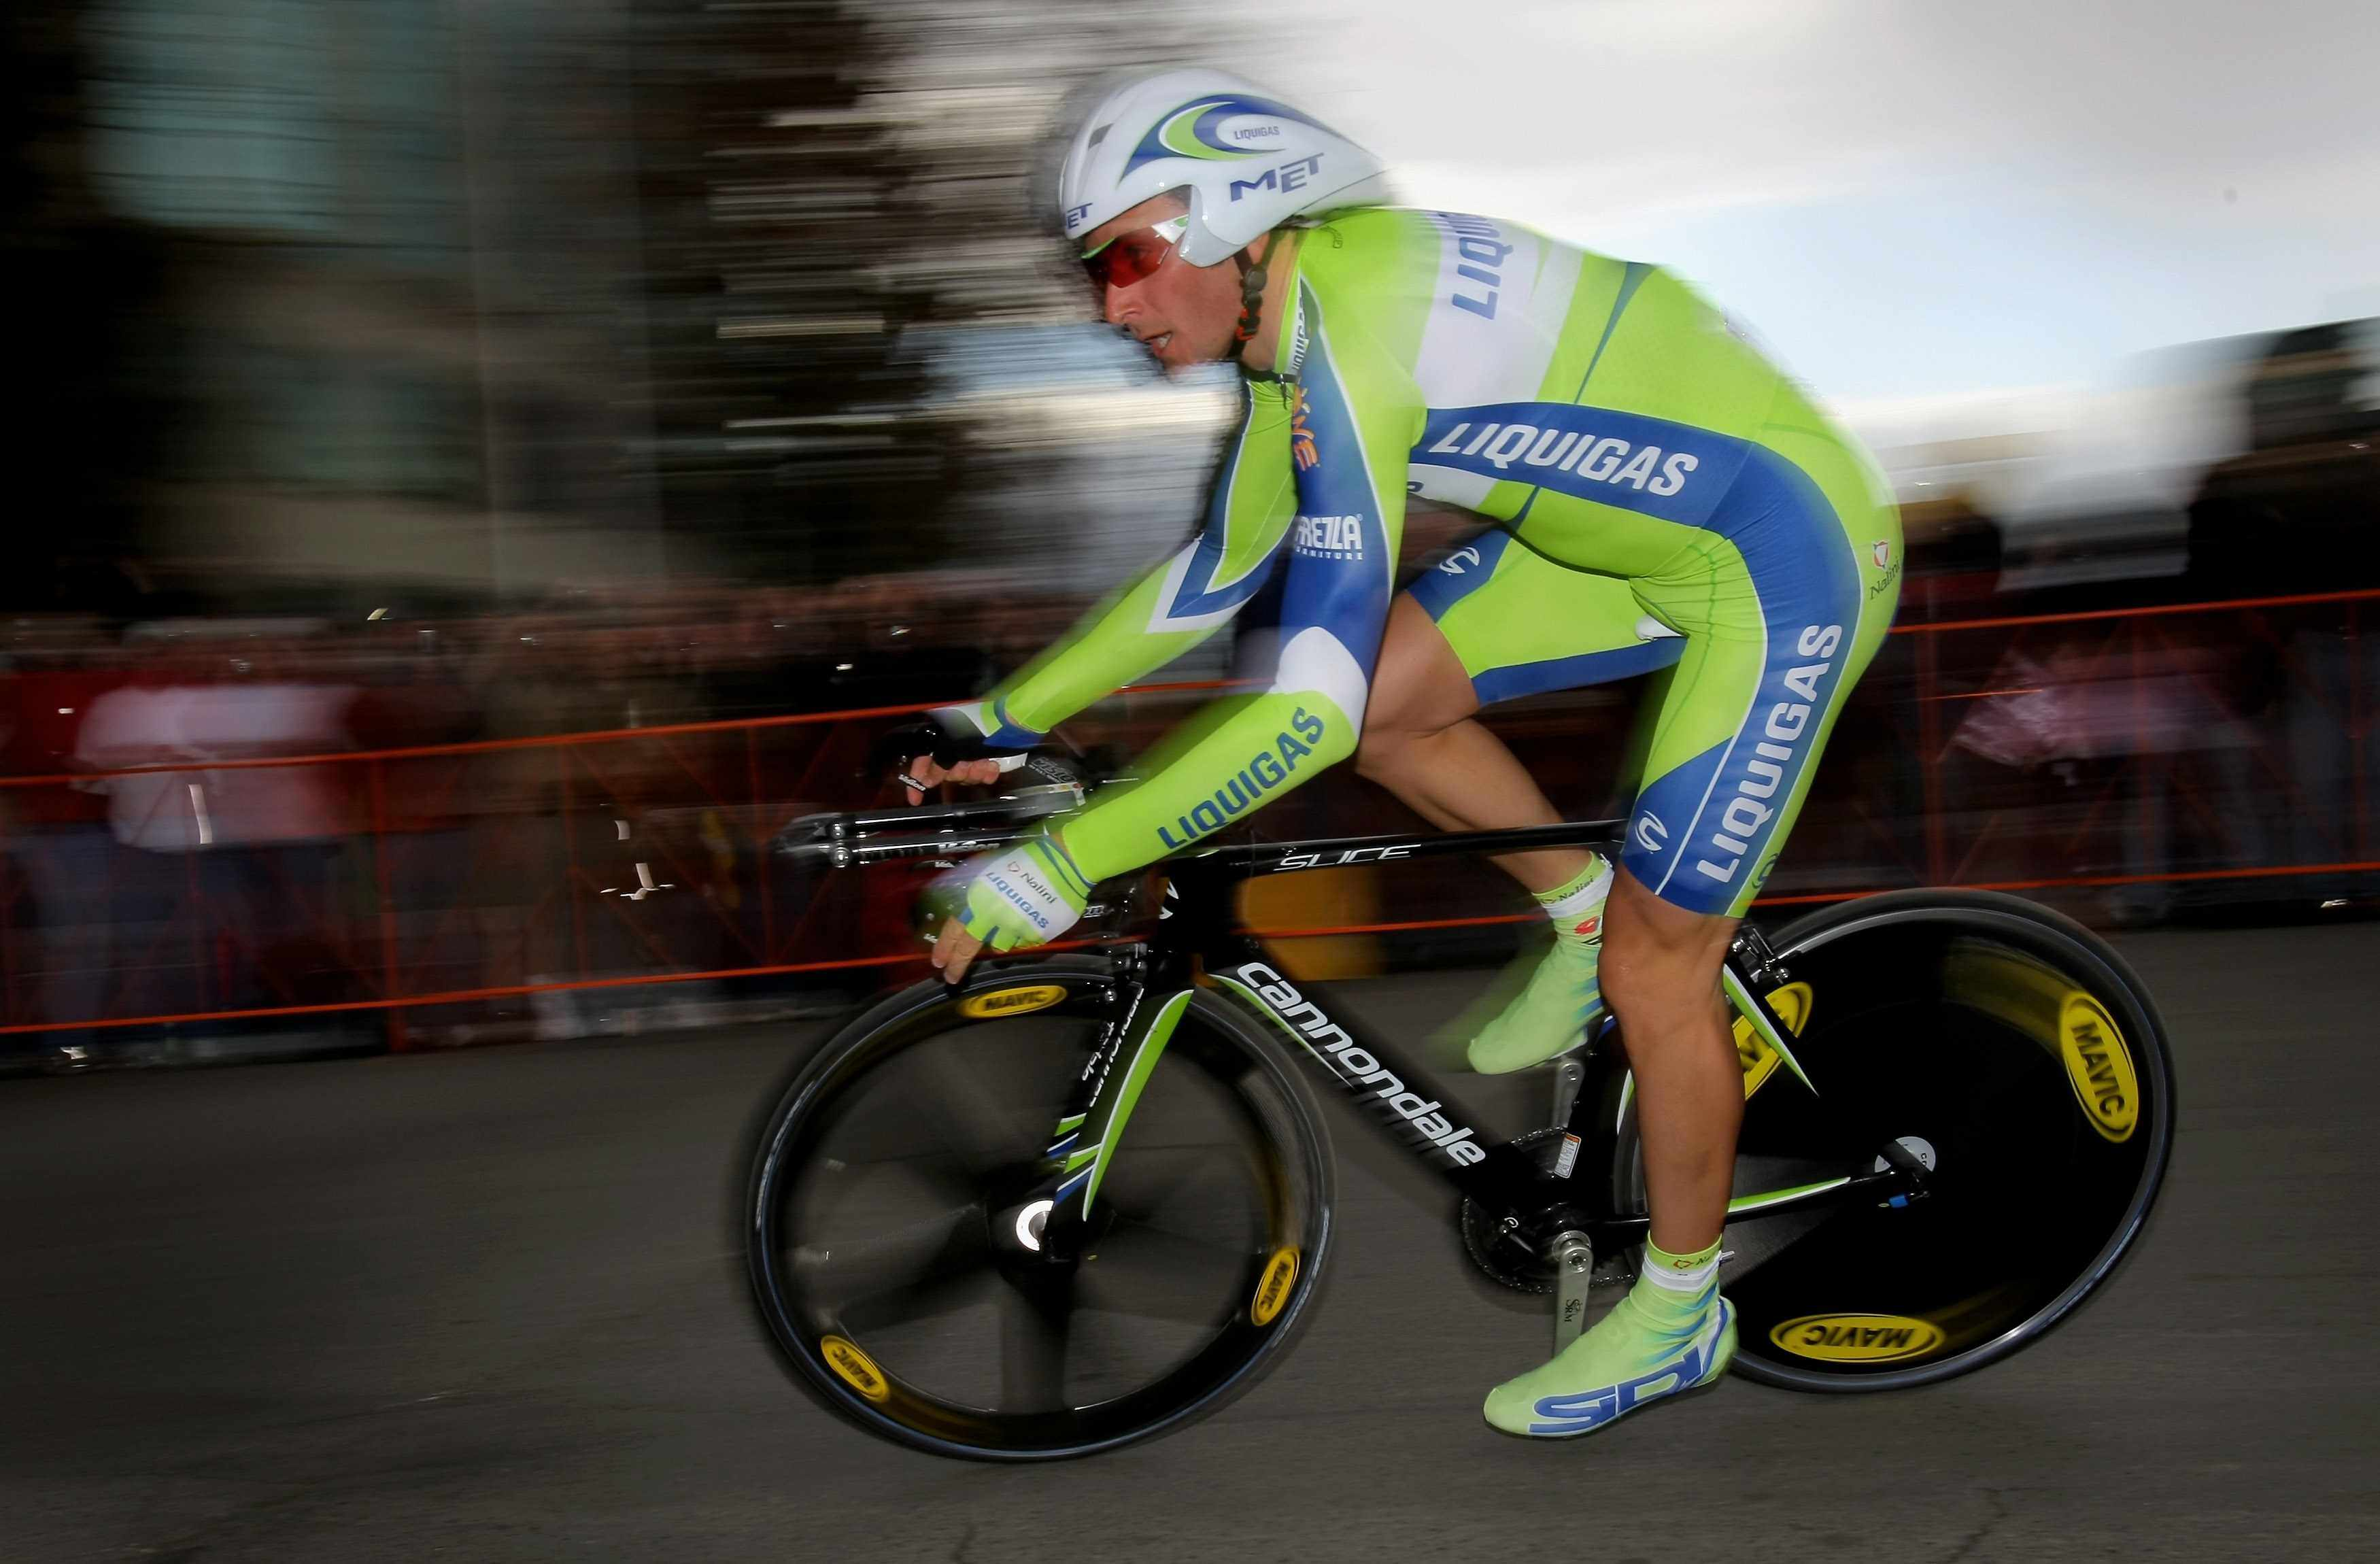 Italian star Ivan Basso races his Cannondale in the recent Tour of California.